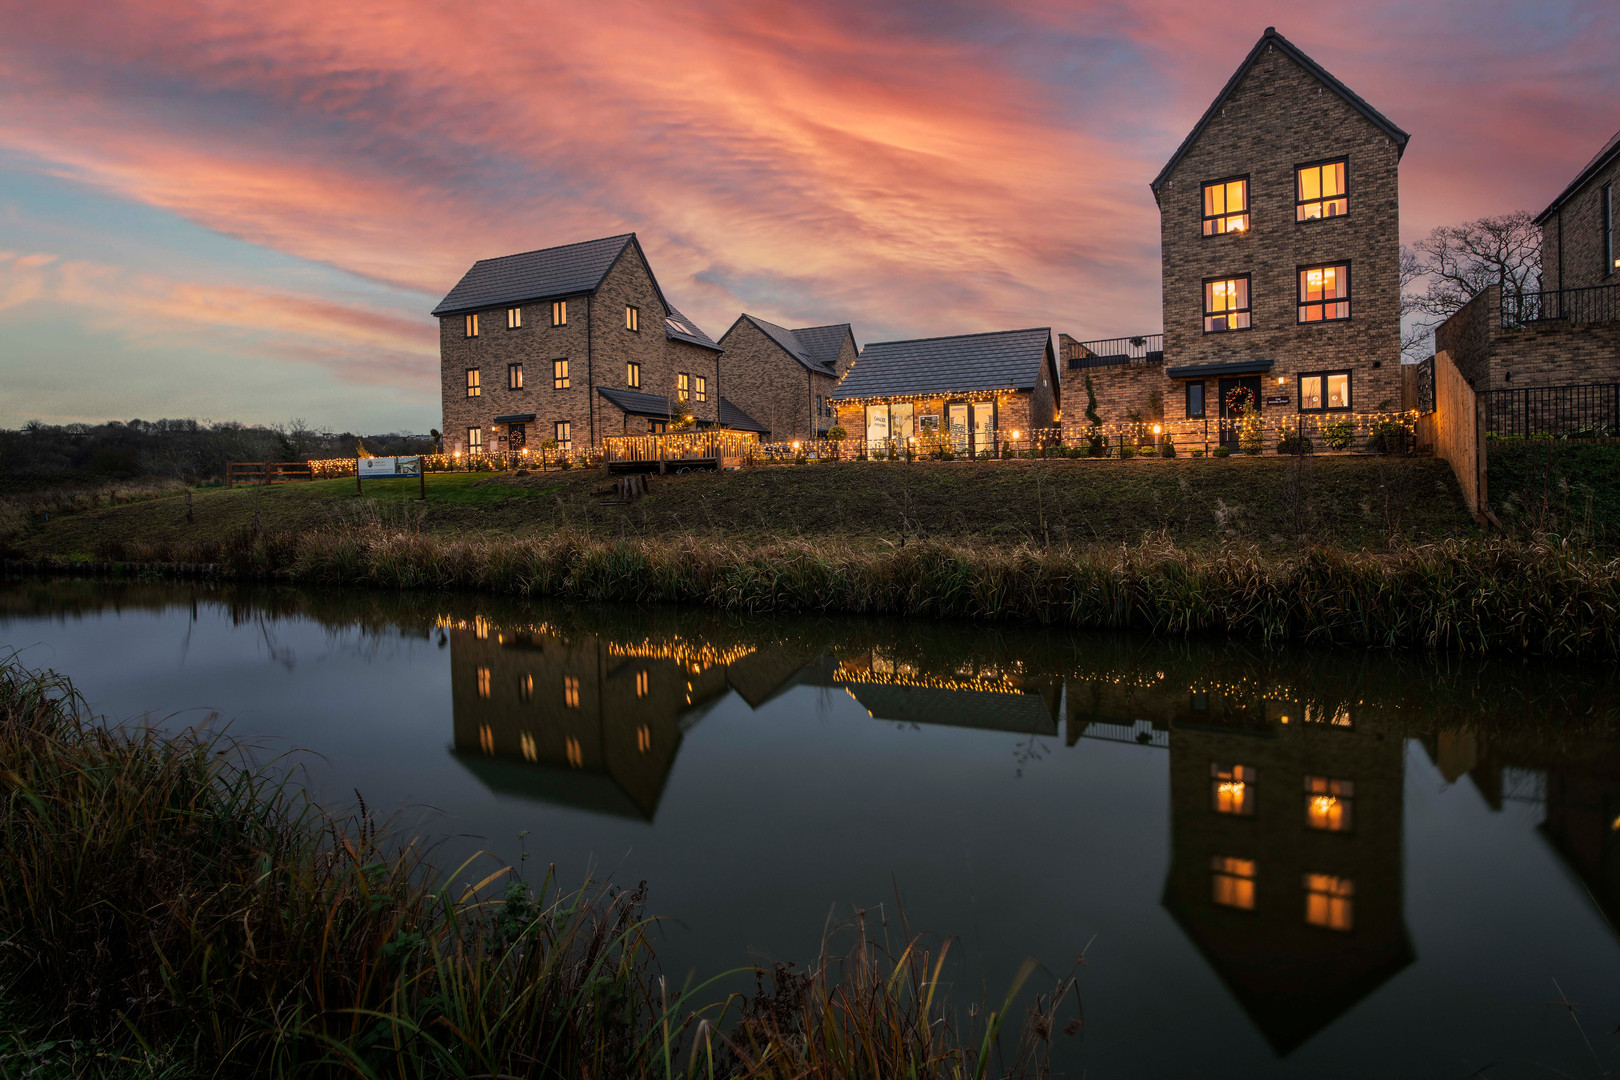 Evening picture of a housing development